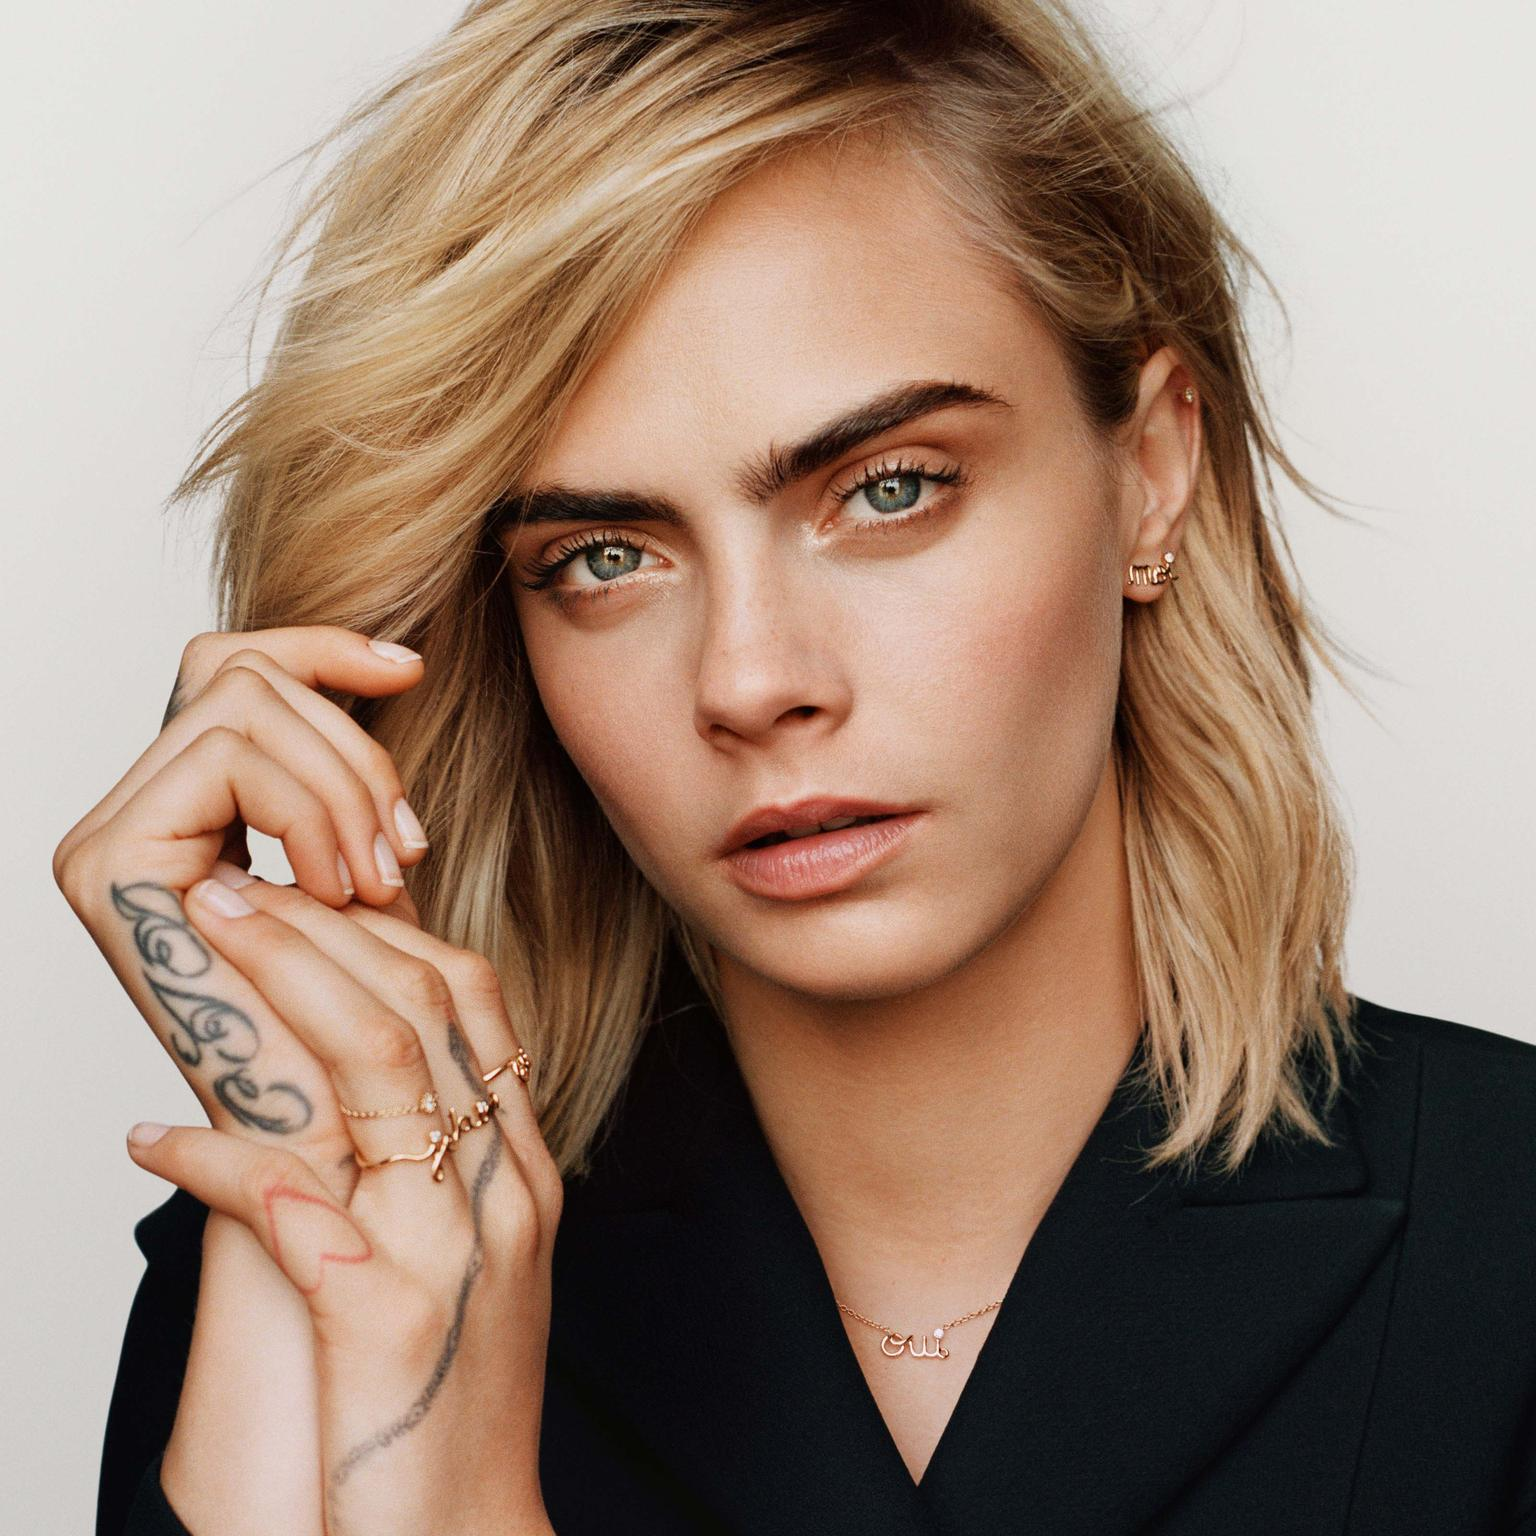 Dior Oui collection with Cara Delavingne